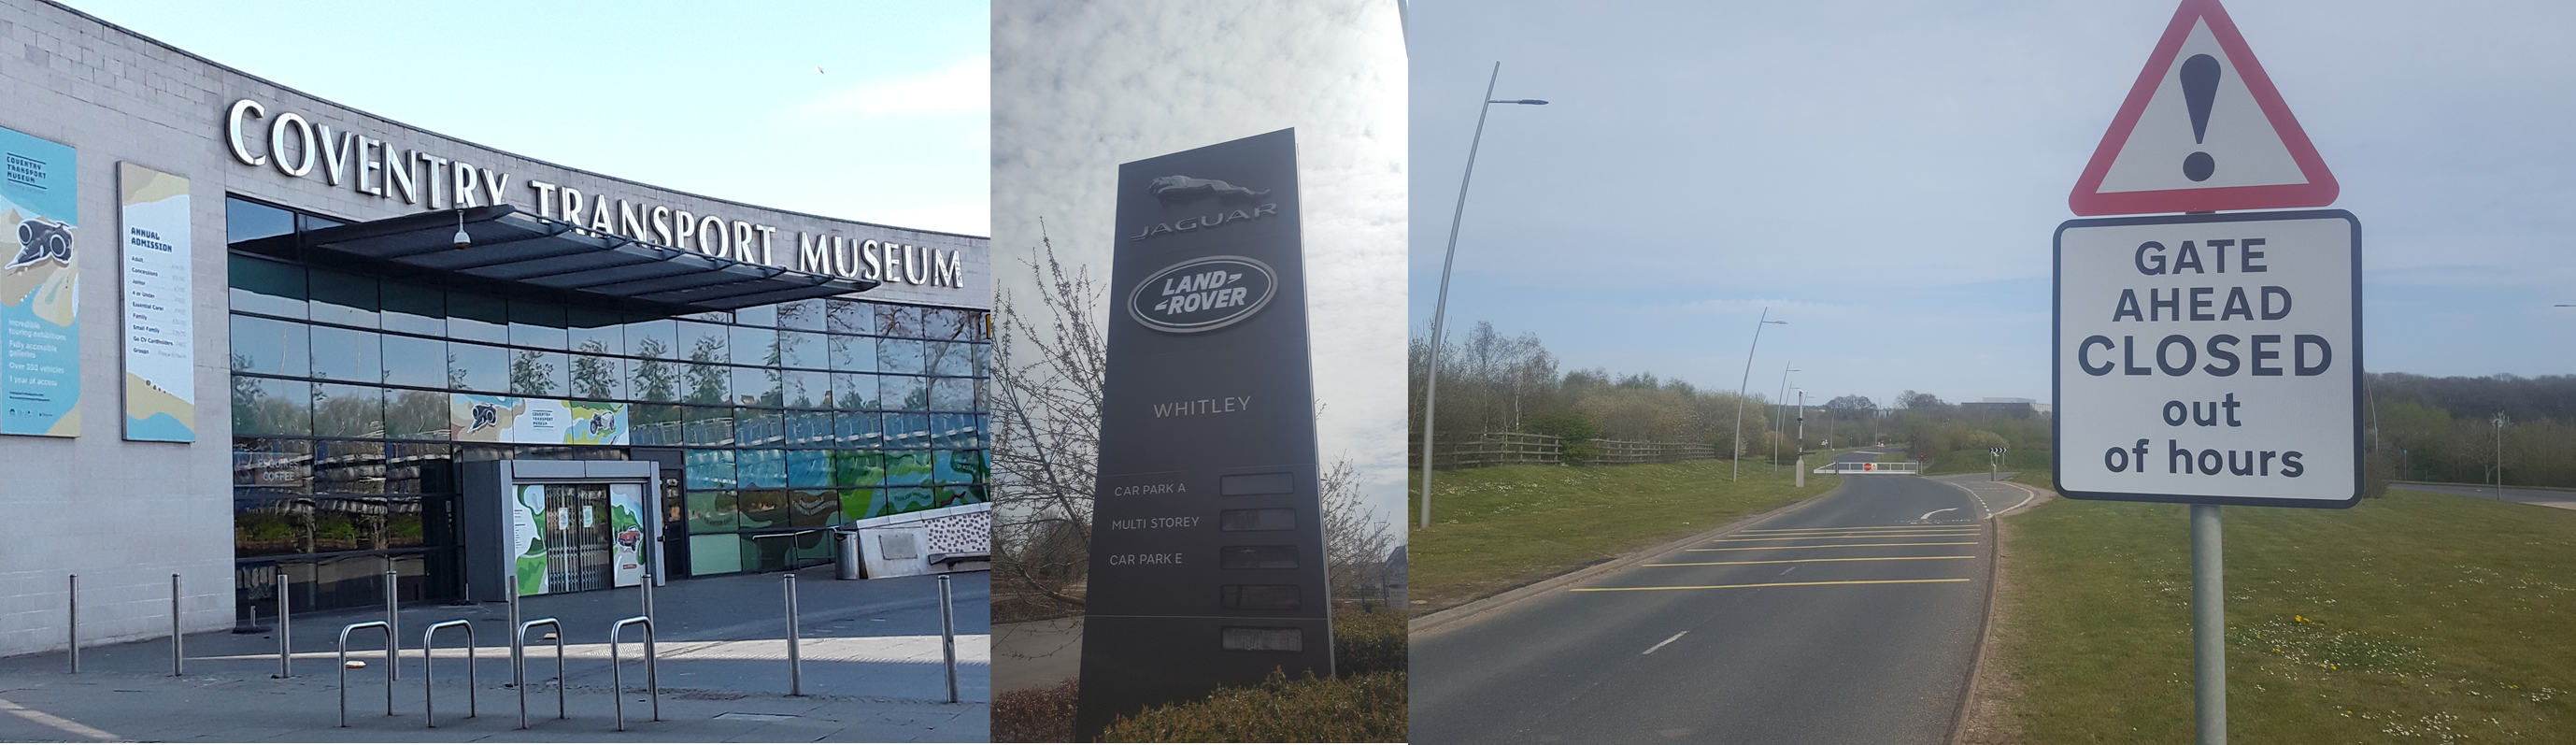 Vehicle Manufacture: The Coventry Transport Museum, and the Global Headquarters of JLR at Whitley and the London Electric Vehicle Company at Ansty. Note to self: don't try and take the photo on a Sunday next time...